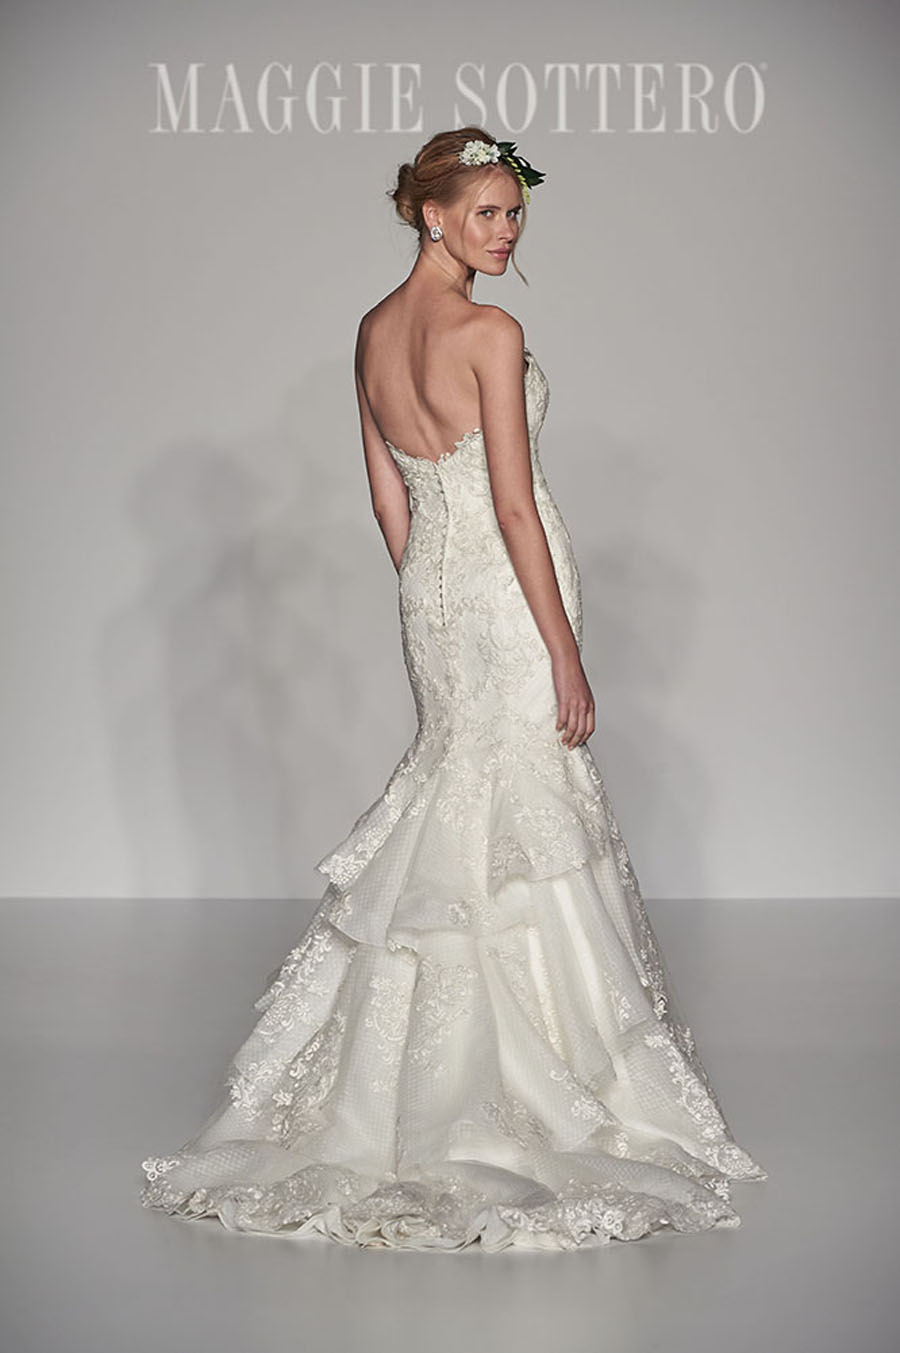 Maggie Sottero Spring 2017 Collection - Goldie Back